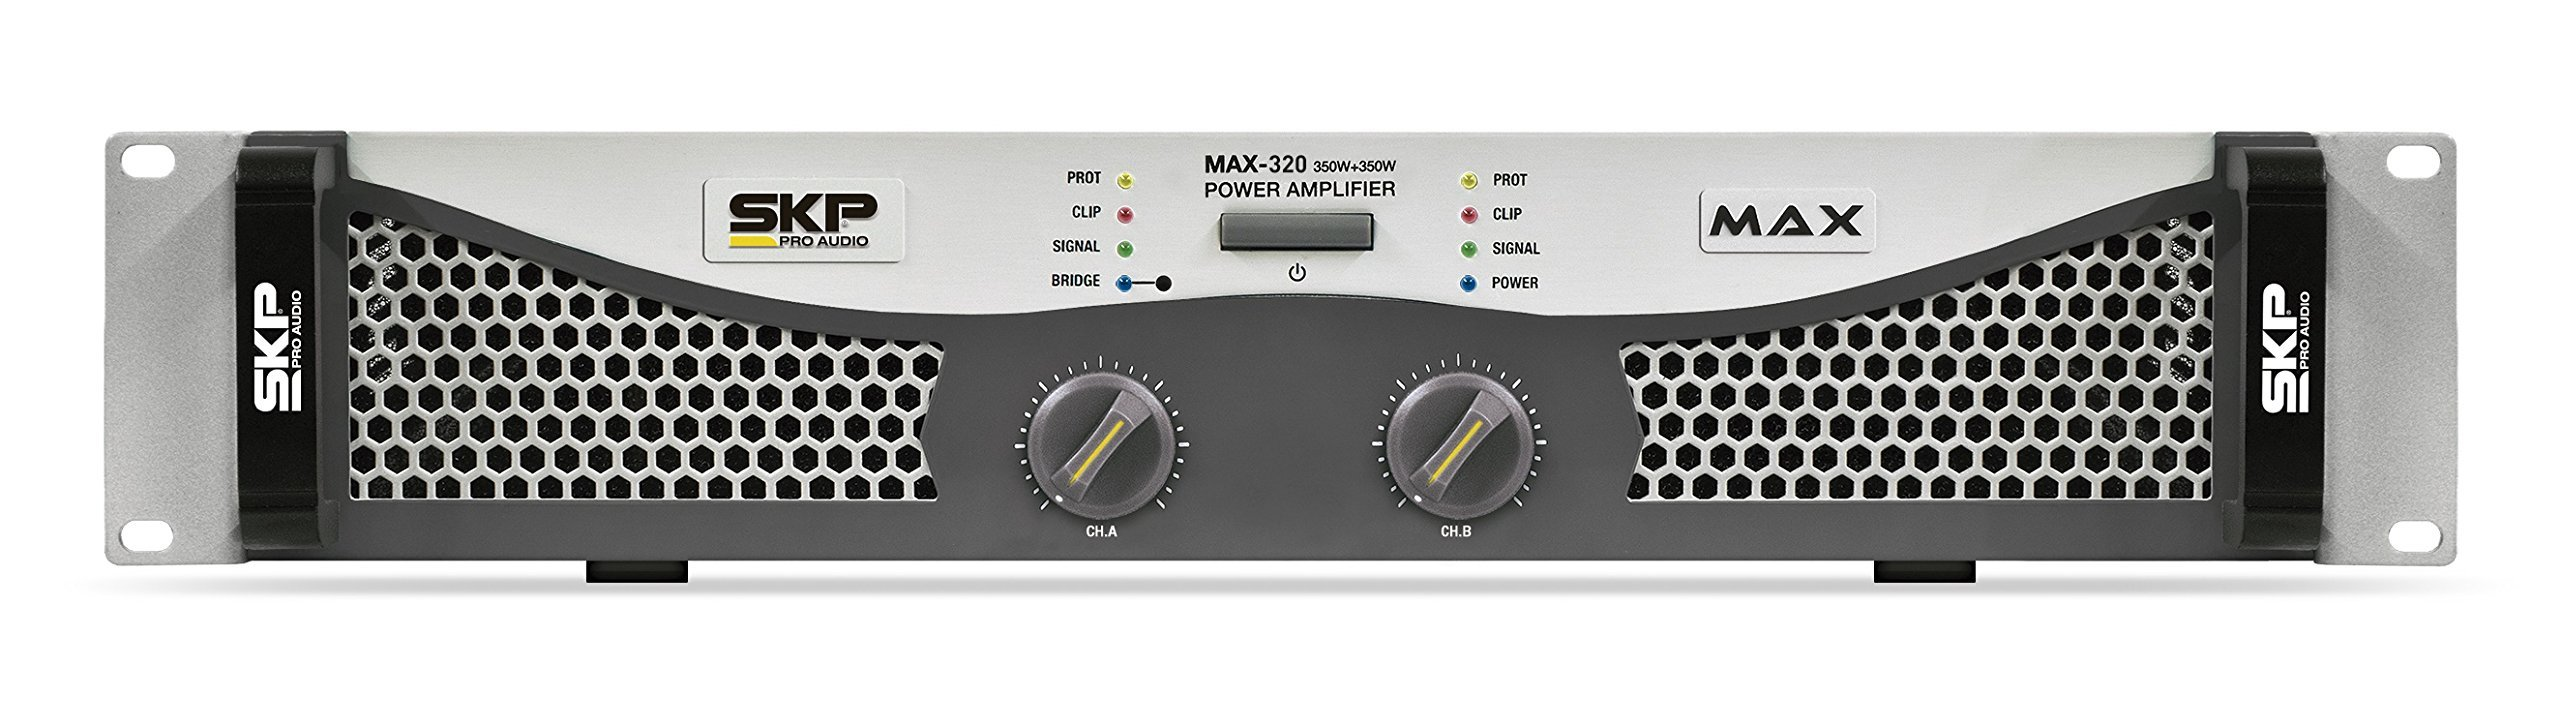 SKP Pro Audio Max-320 Stereo Output RMS Power 150 W Plus 150 W Powered Amplifier